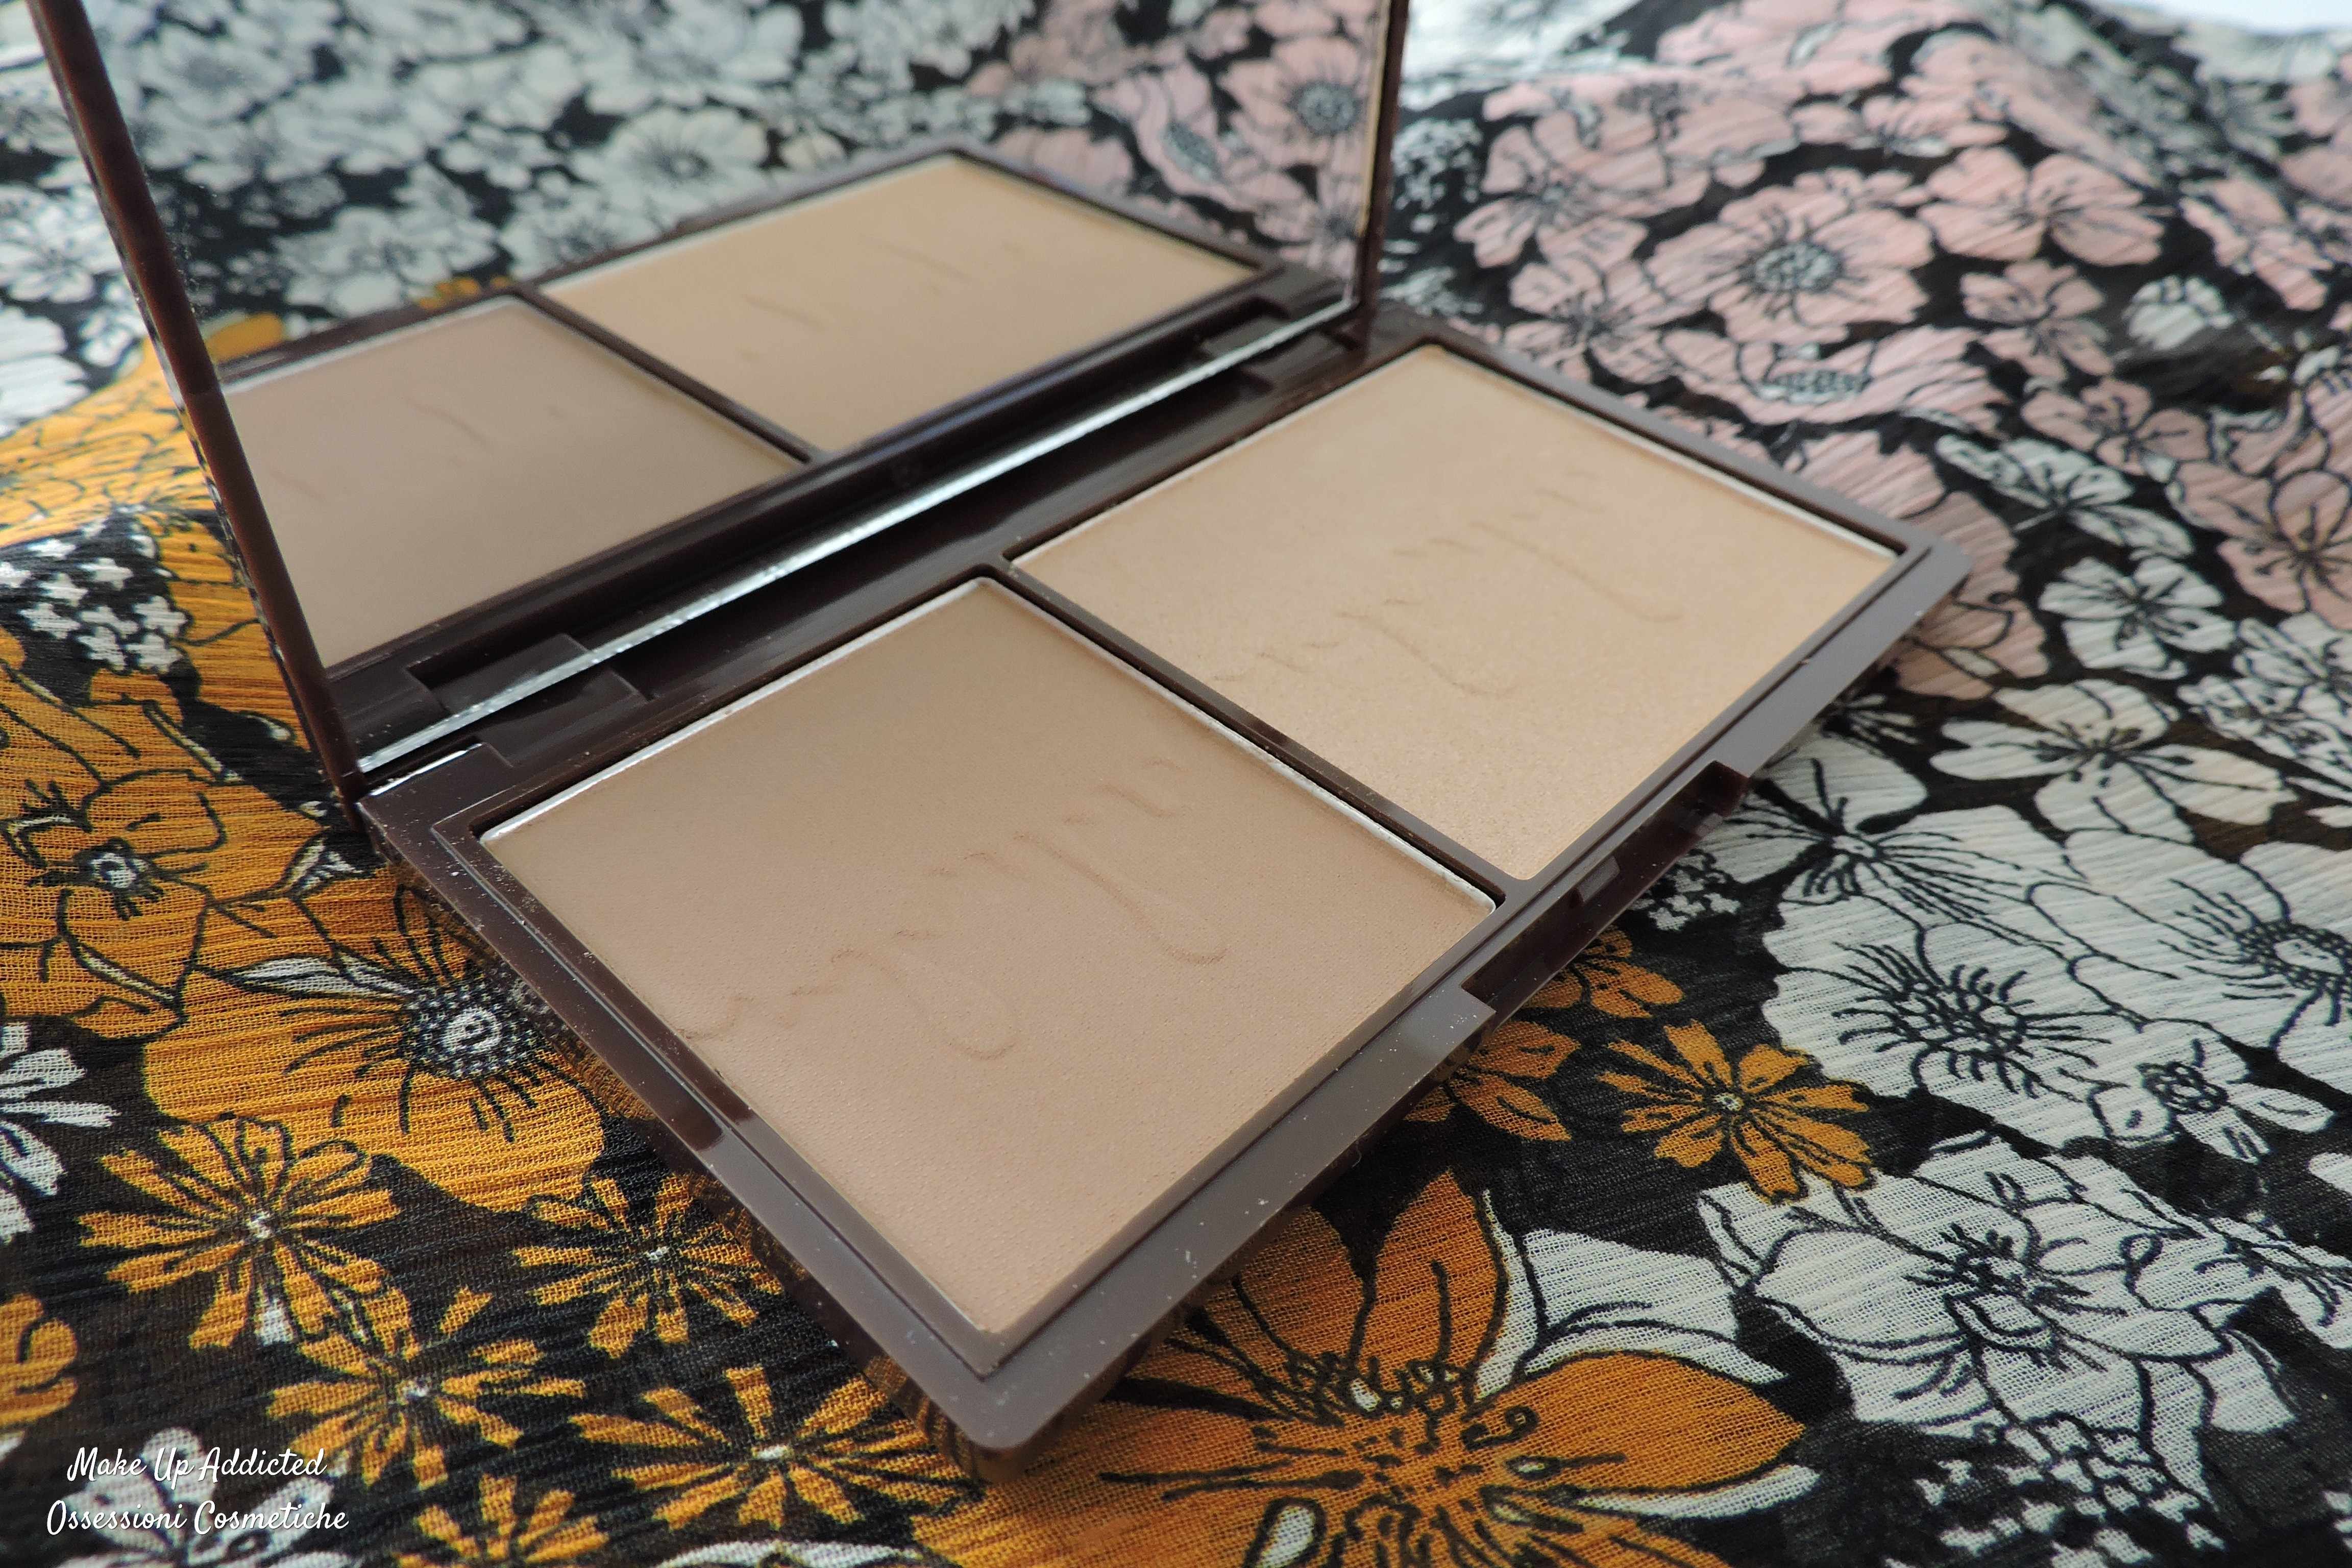 I Heart Makeup Bronze and Glow Duo